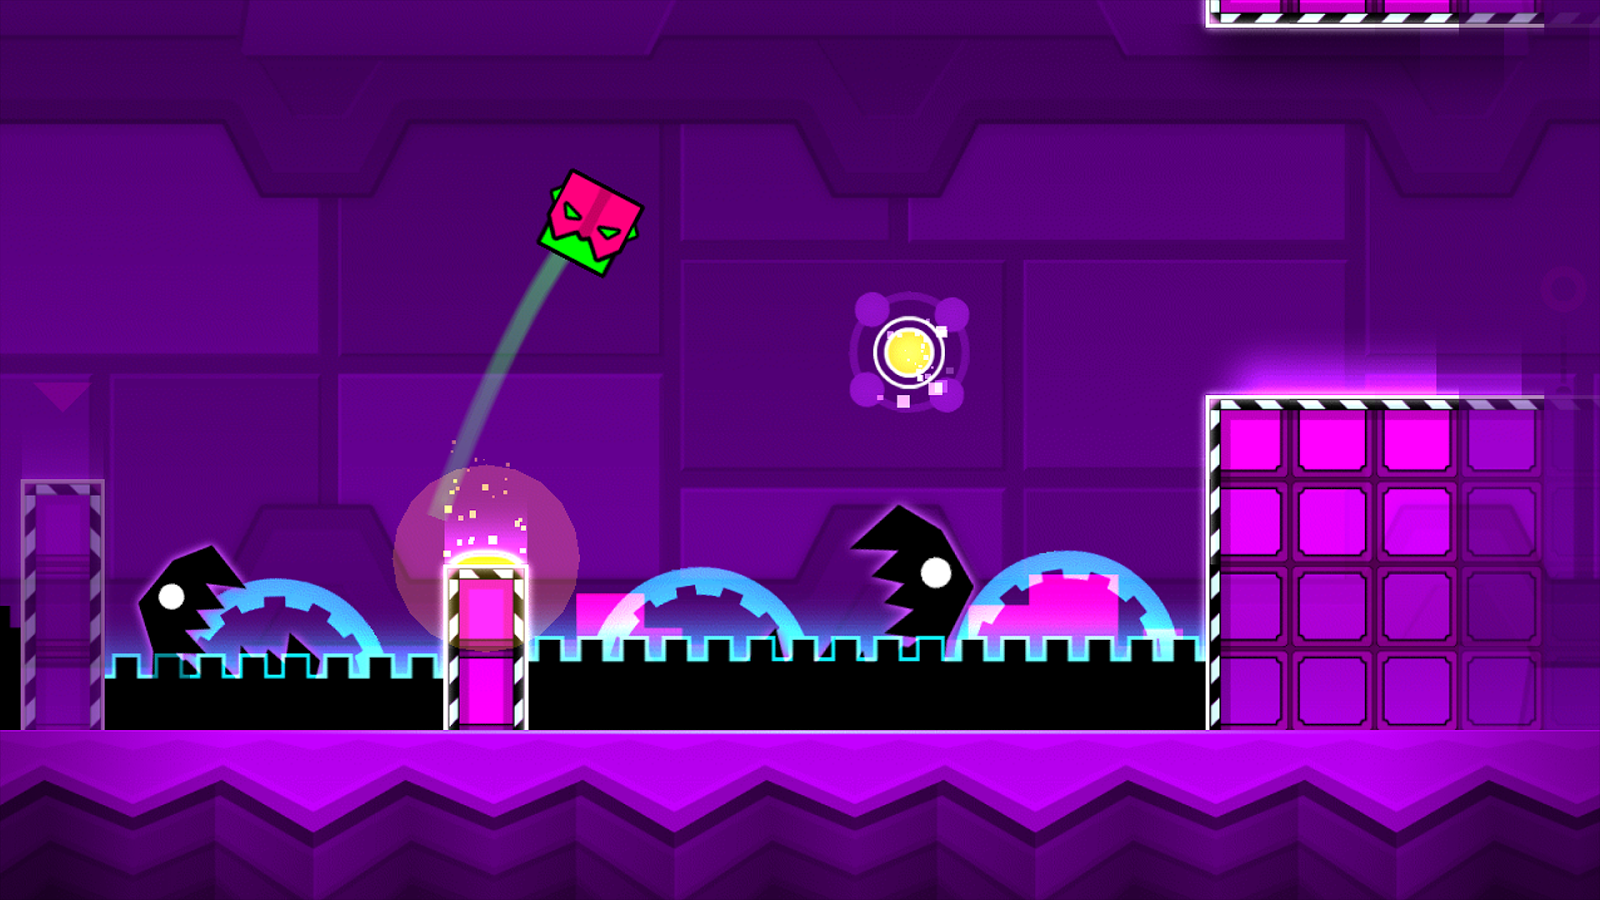 geometry dash free download pc 2.1